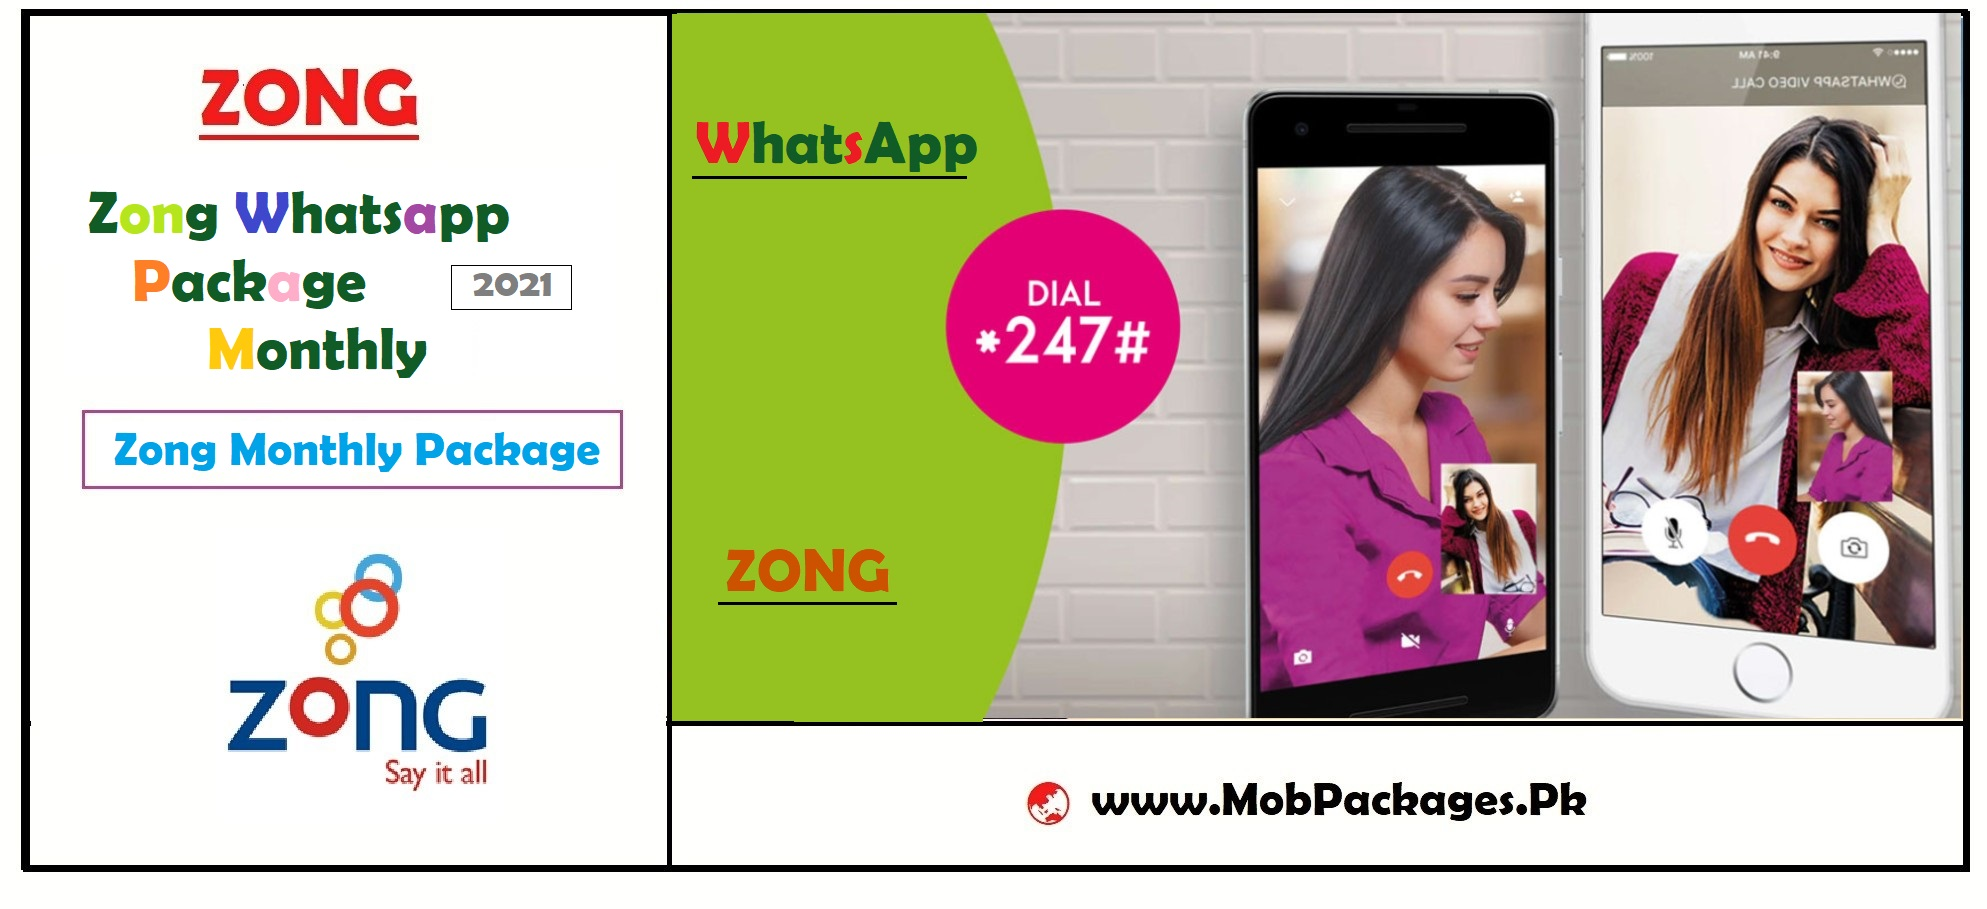 Zong Whatsapp Package 2021 Monthly